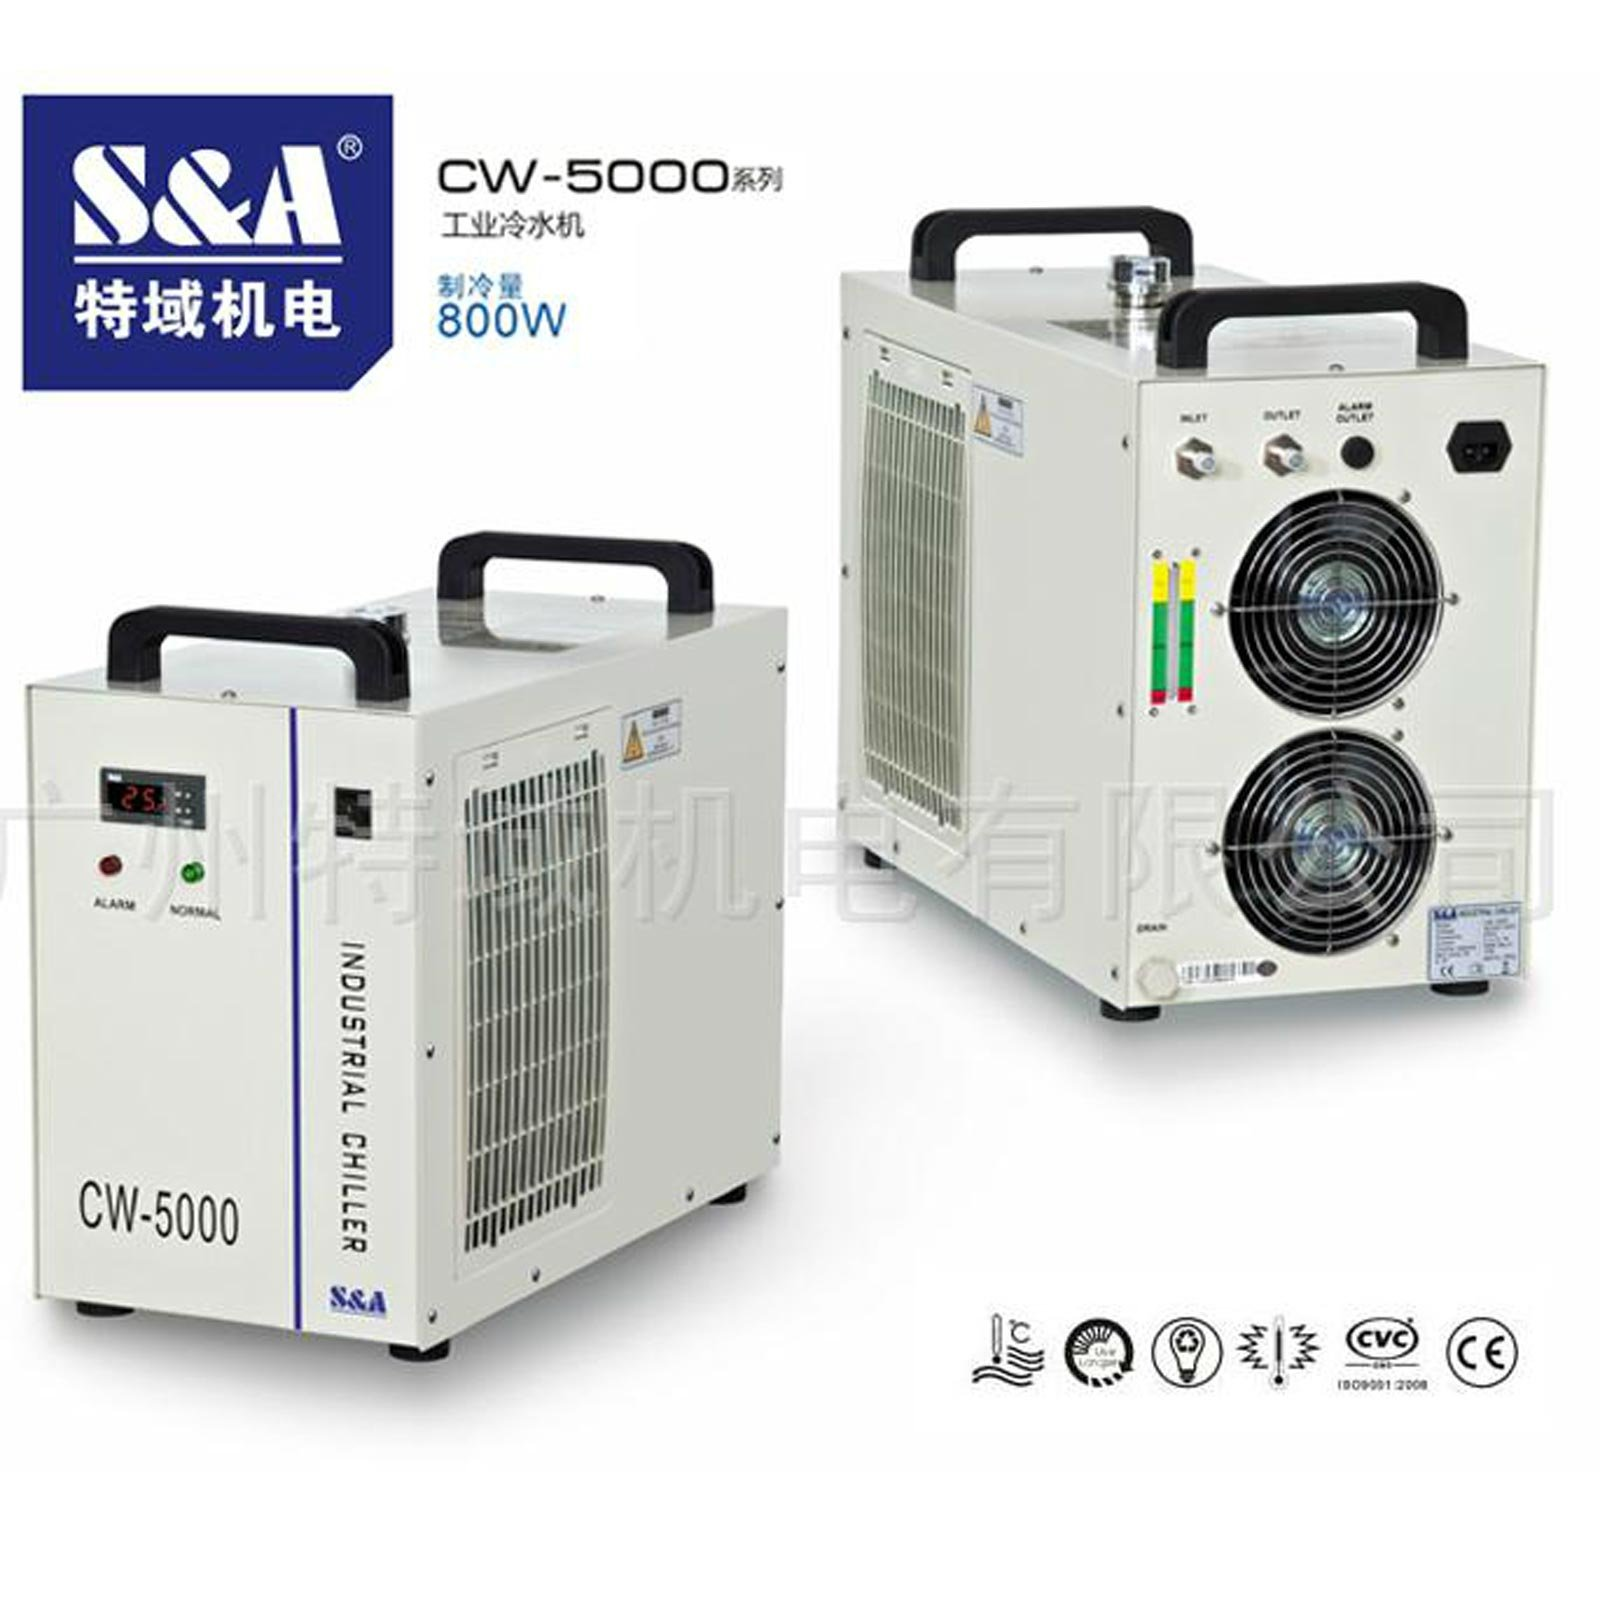 Industrial Water Chiller Cool 5KW Spindle Welding Equipment CW-5000DH 110V 60Hz